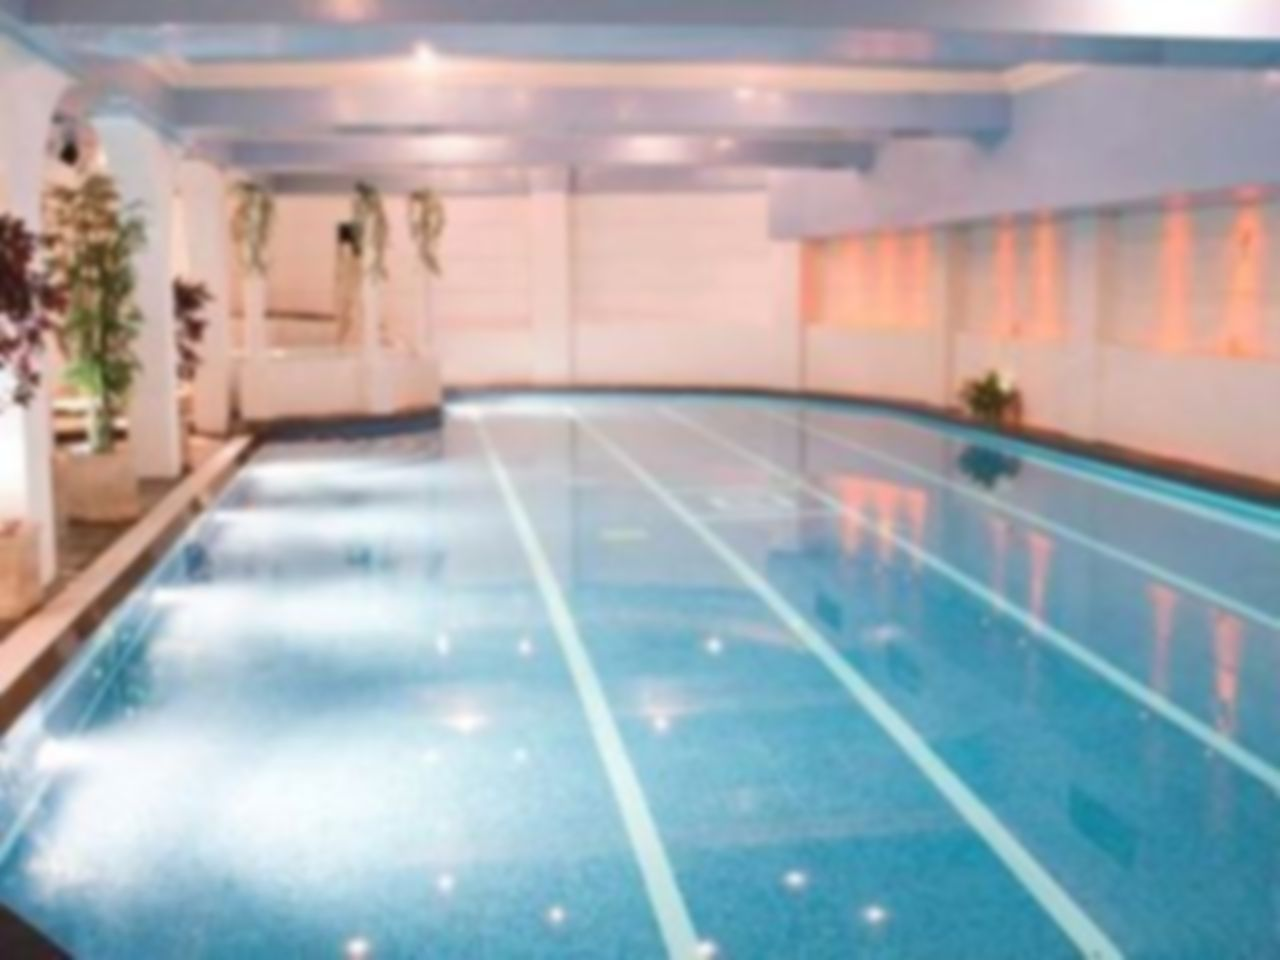 Eighth level flexible gym passes ub2 london - Bletchley swimming pool opening times ...